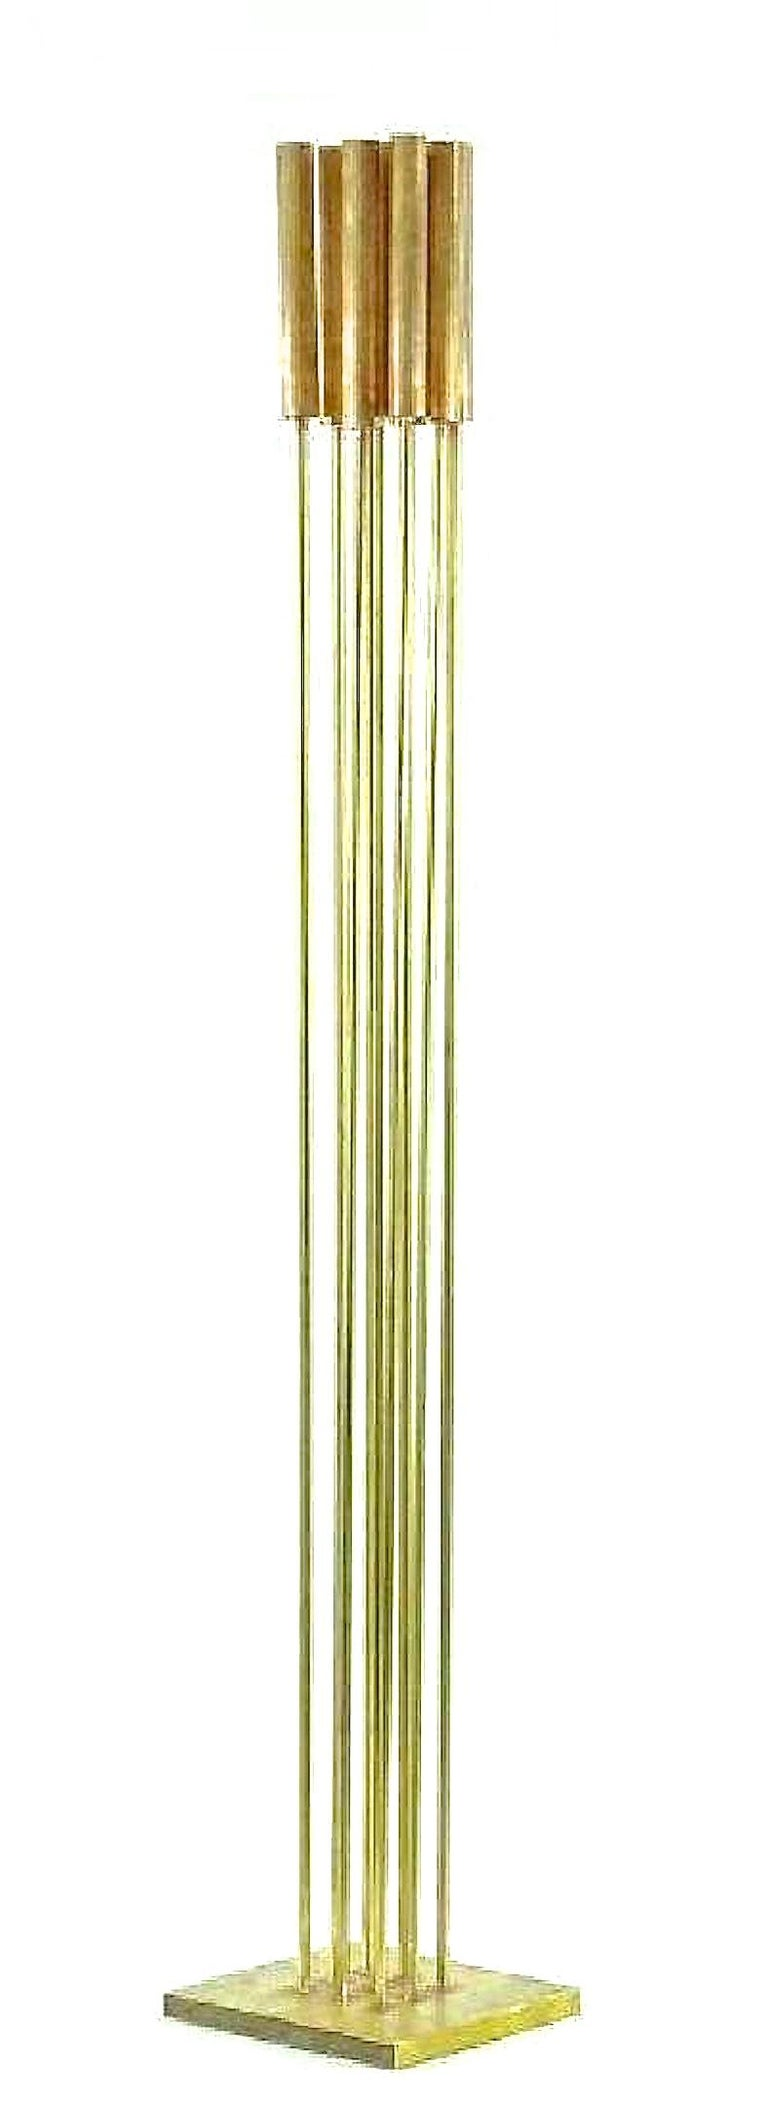 Contemporary 9-Rod Brass Kinetic Sculpture For Sale 14